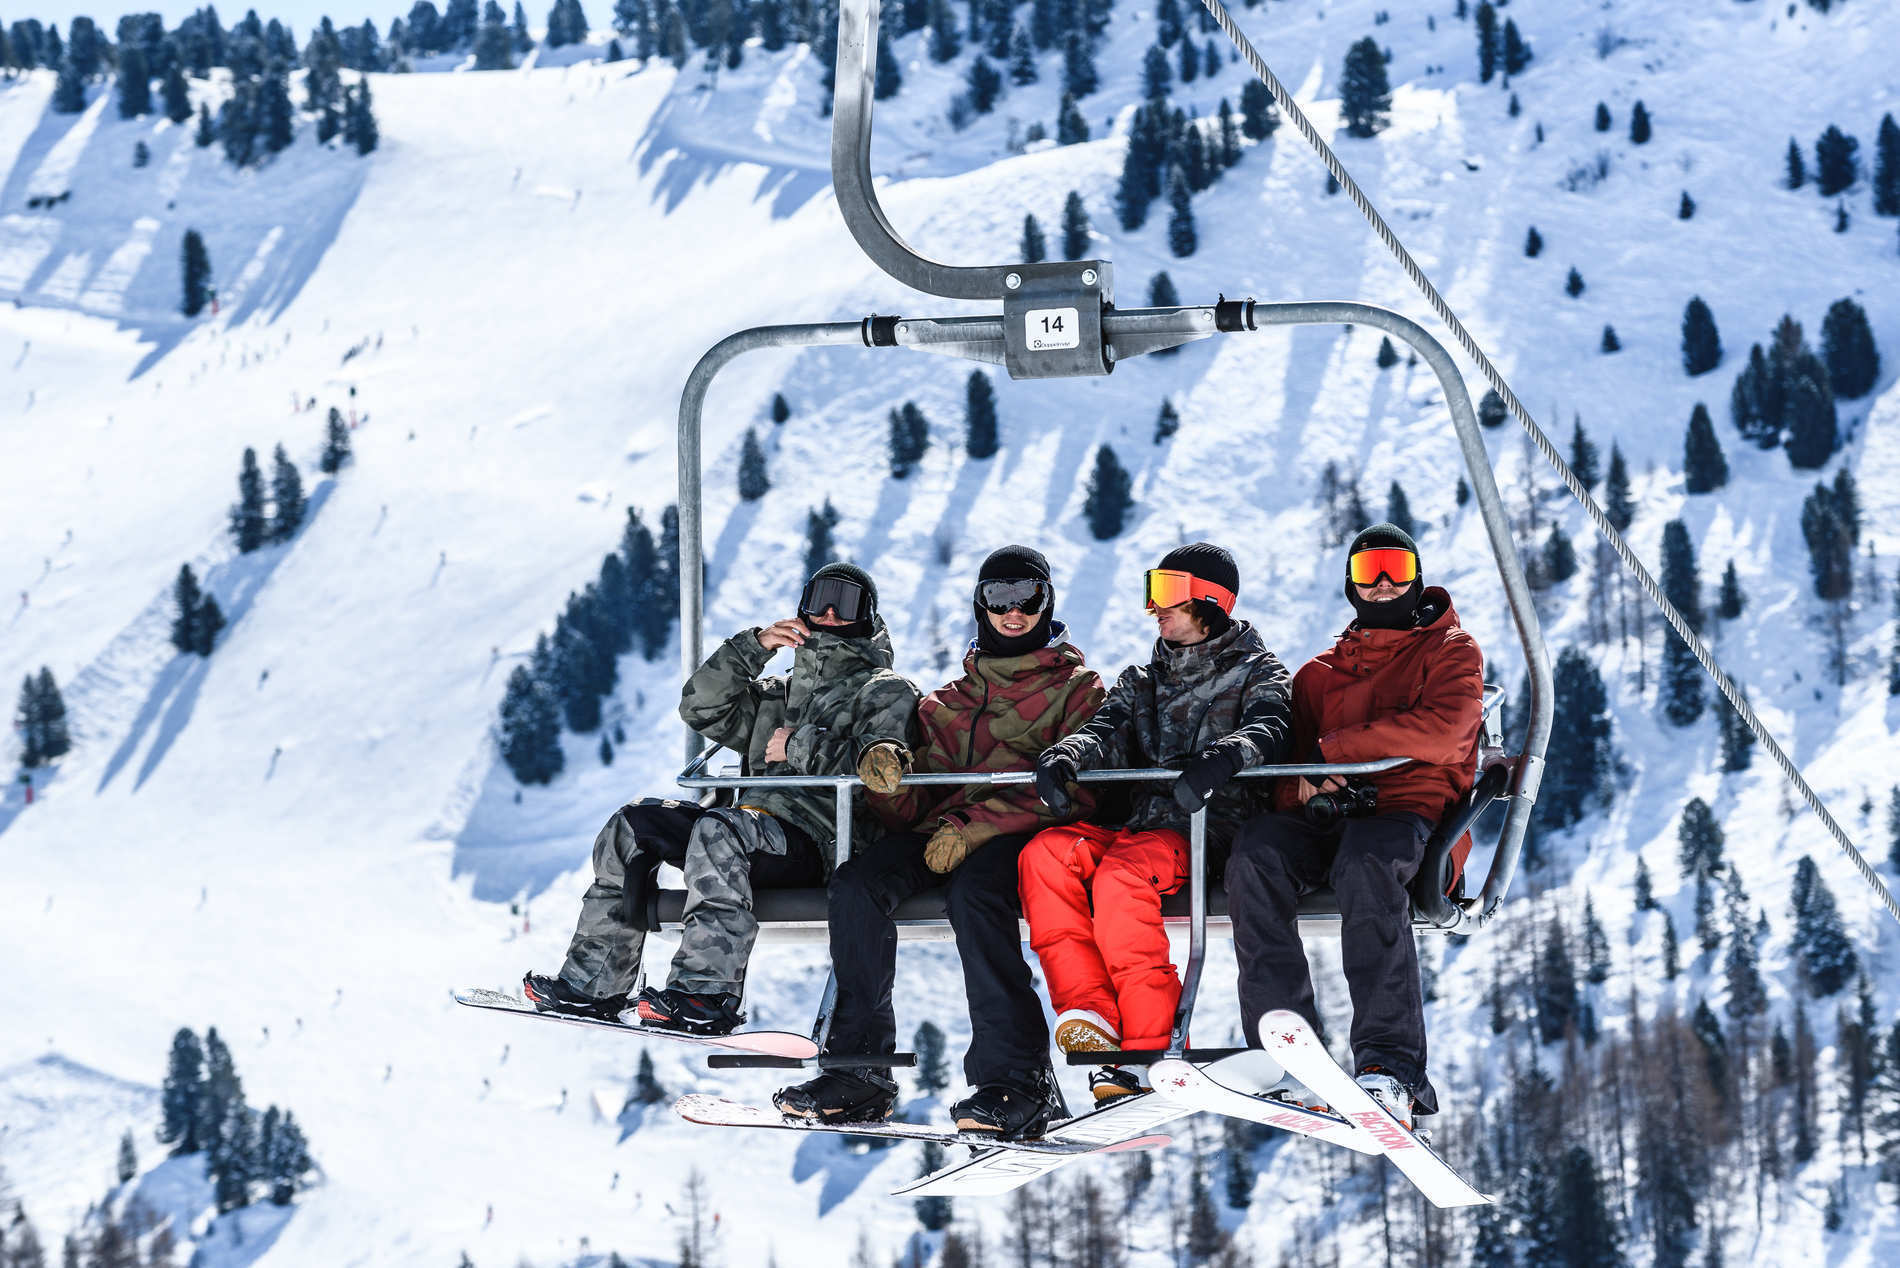 web mayrhofen 22 03 2018 lifestyle sb christian riefenberg qparks 14